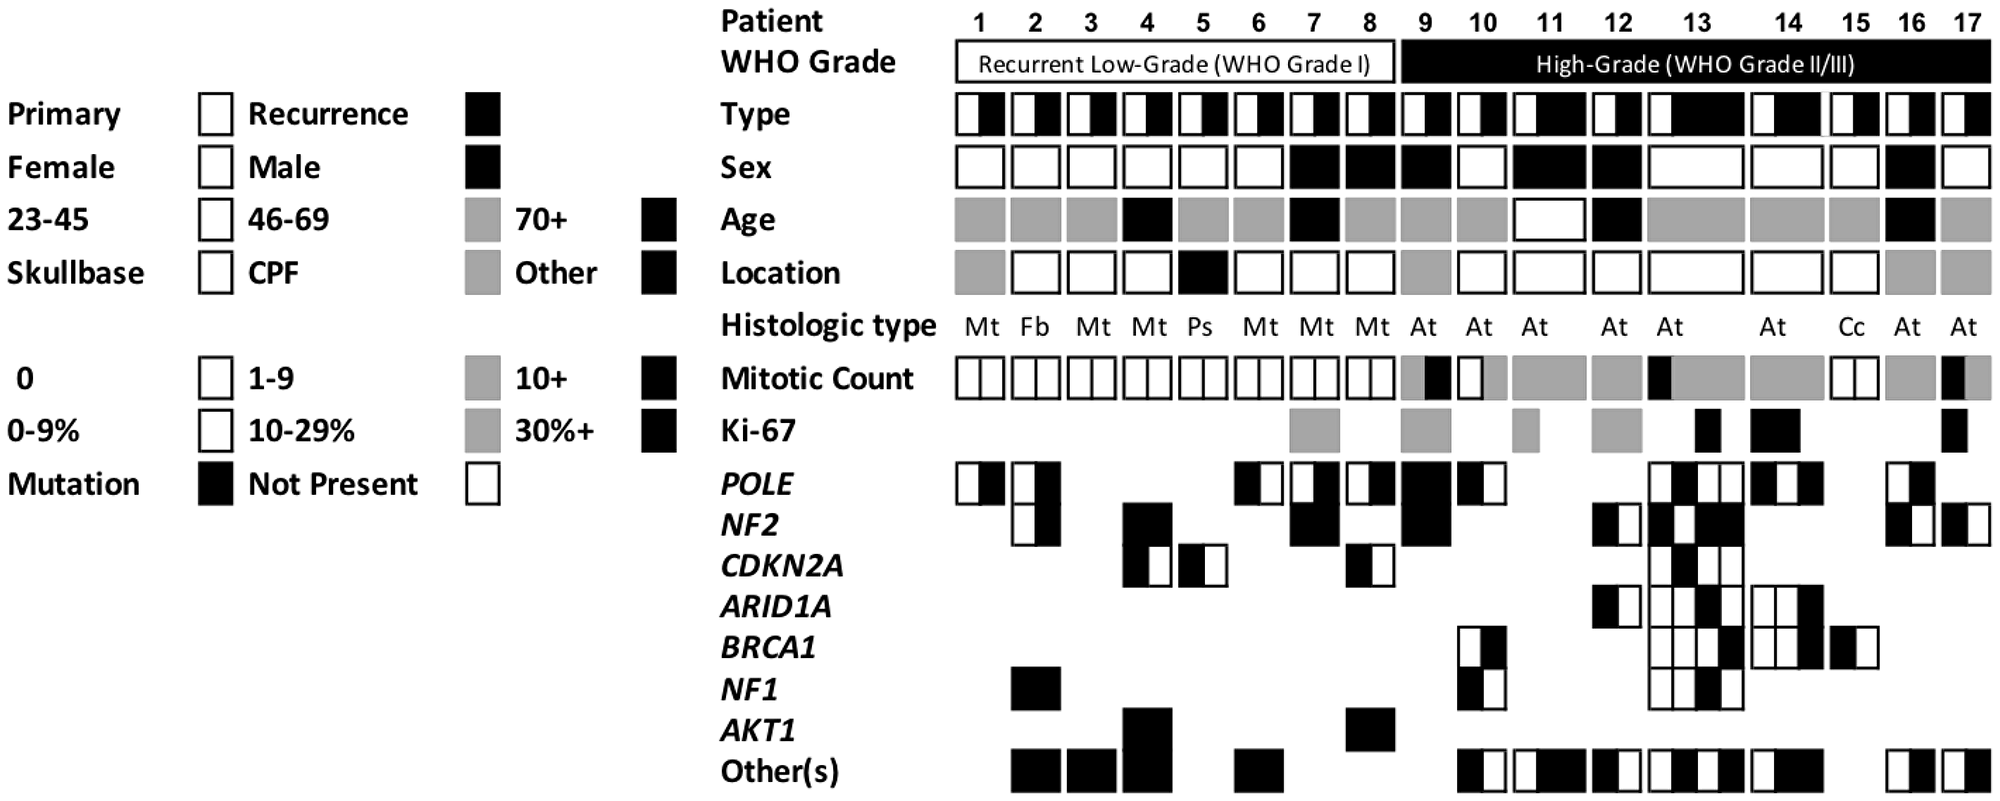 Demographics, tumor features, and mutation status of the cohort of 17 patients with matched targeted sequenced primary and recurrent meningioma.